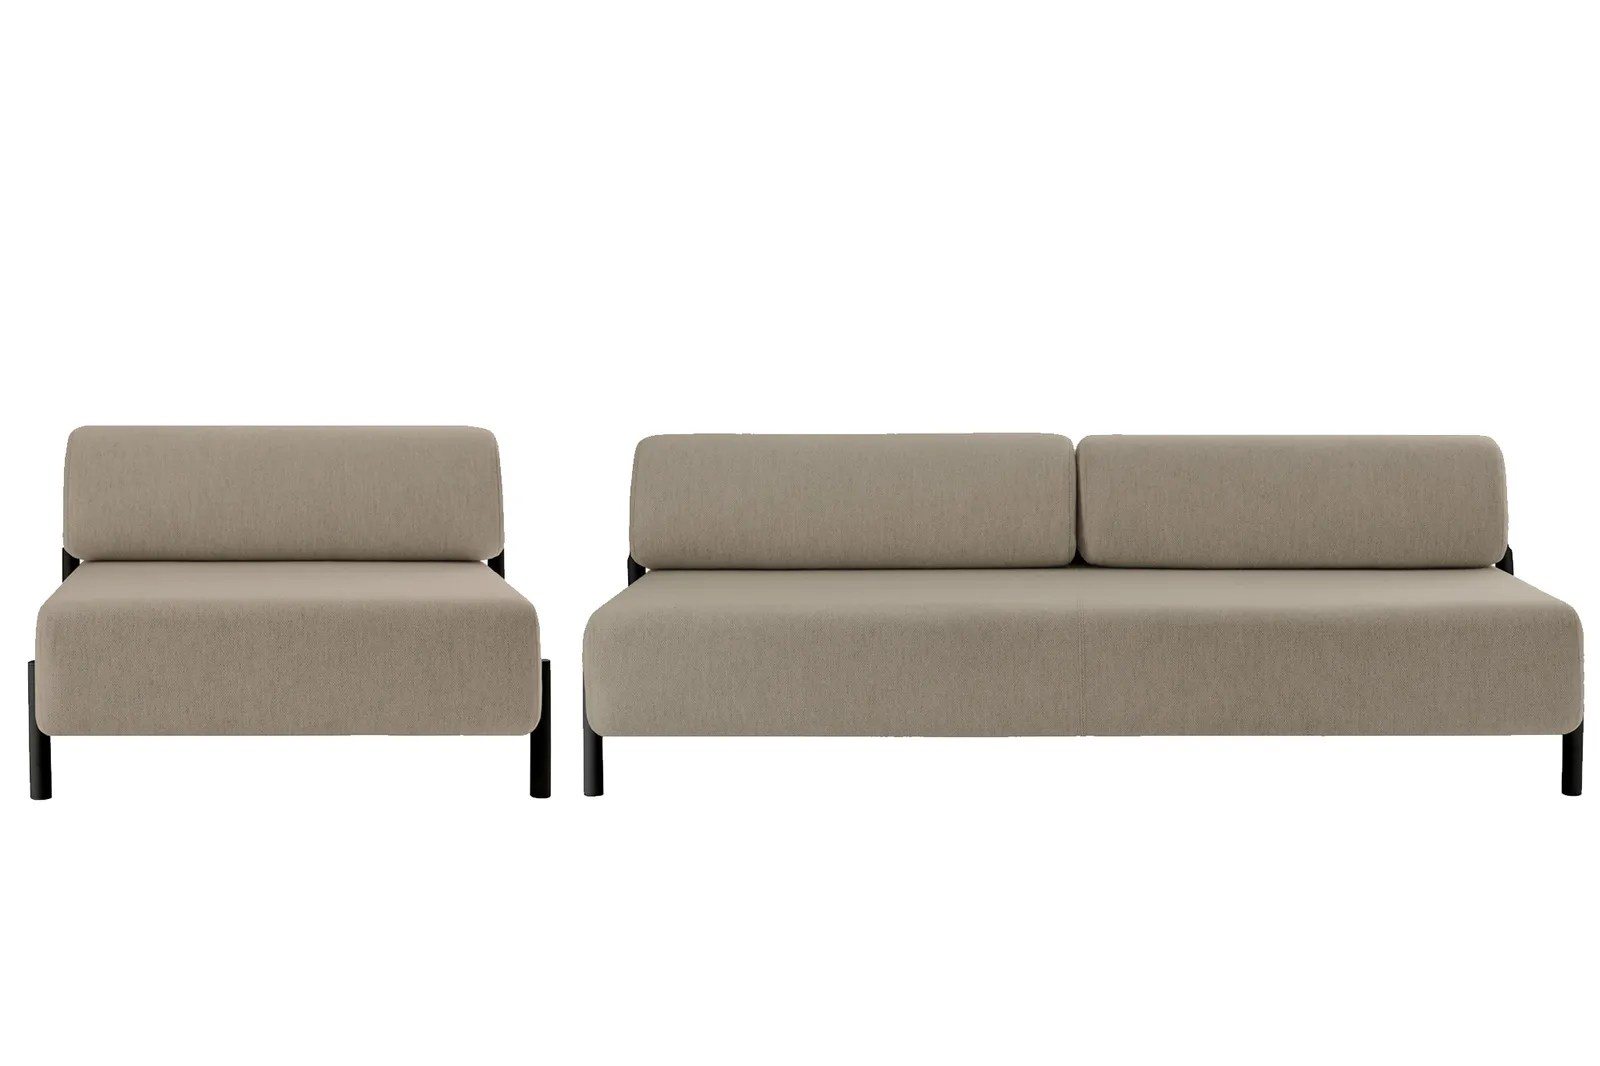 Living Divani Sofa Price Forget Everything You Thought You Knew About Living Room Layouts